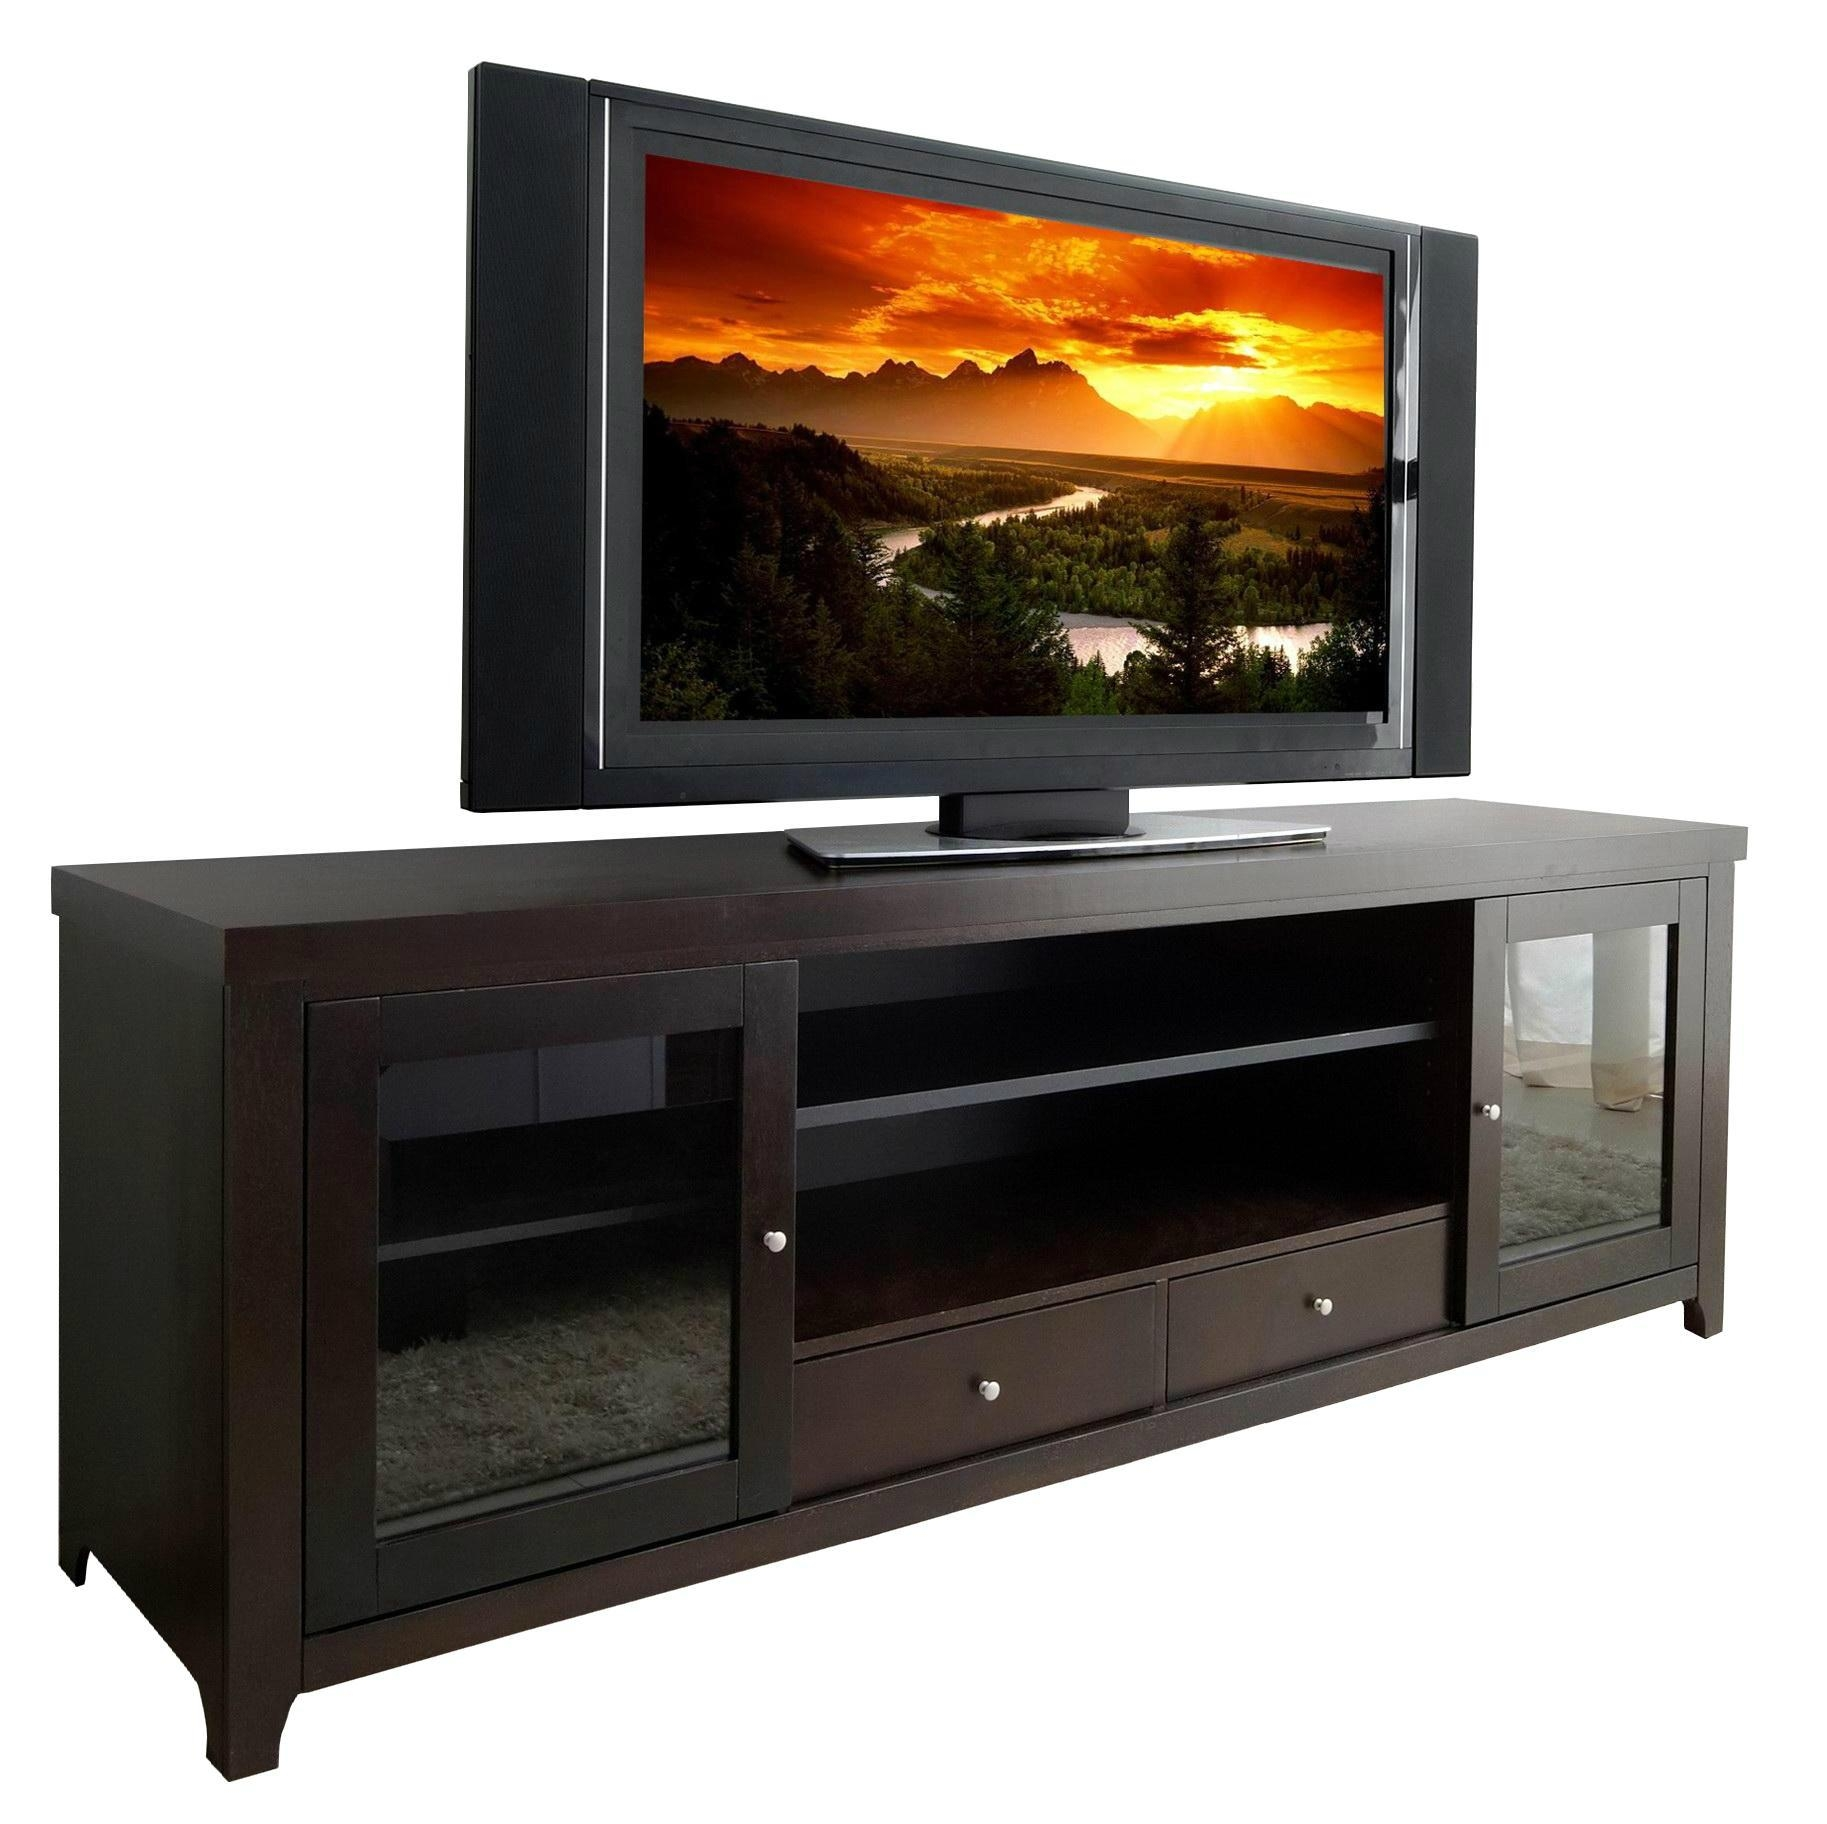 70 inch espresso two door tv television stands for flat screens wd 3777 mighty taiwan. Black Bedroom Furniture Sets. Home Design Ideas